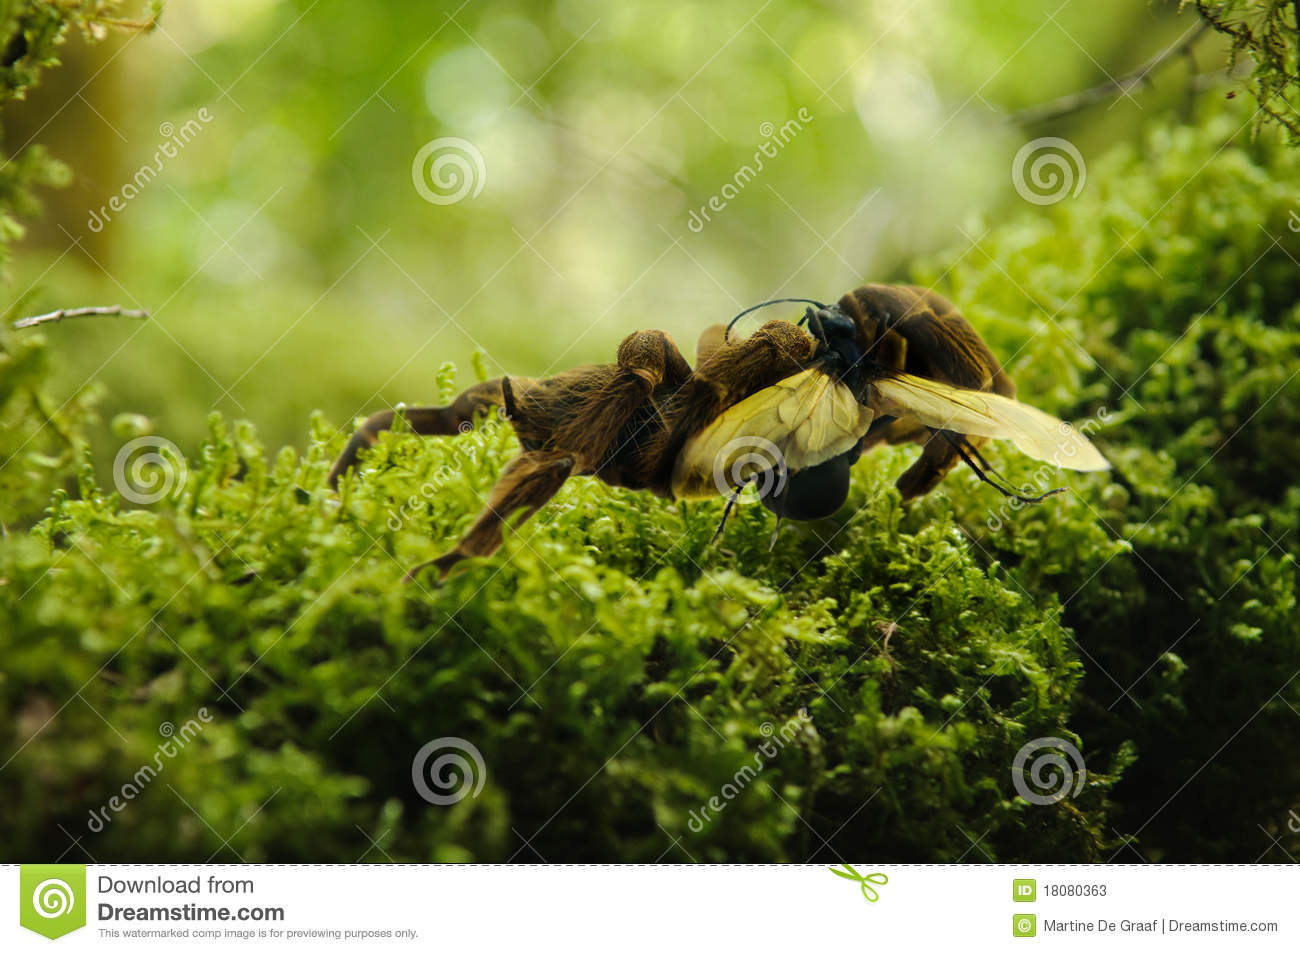 Tarantula and hawk wasp